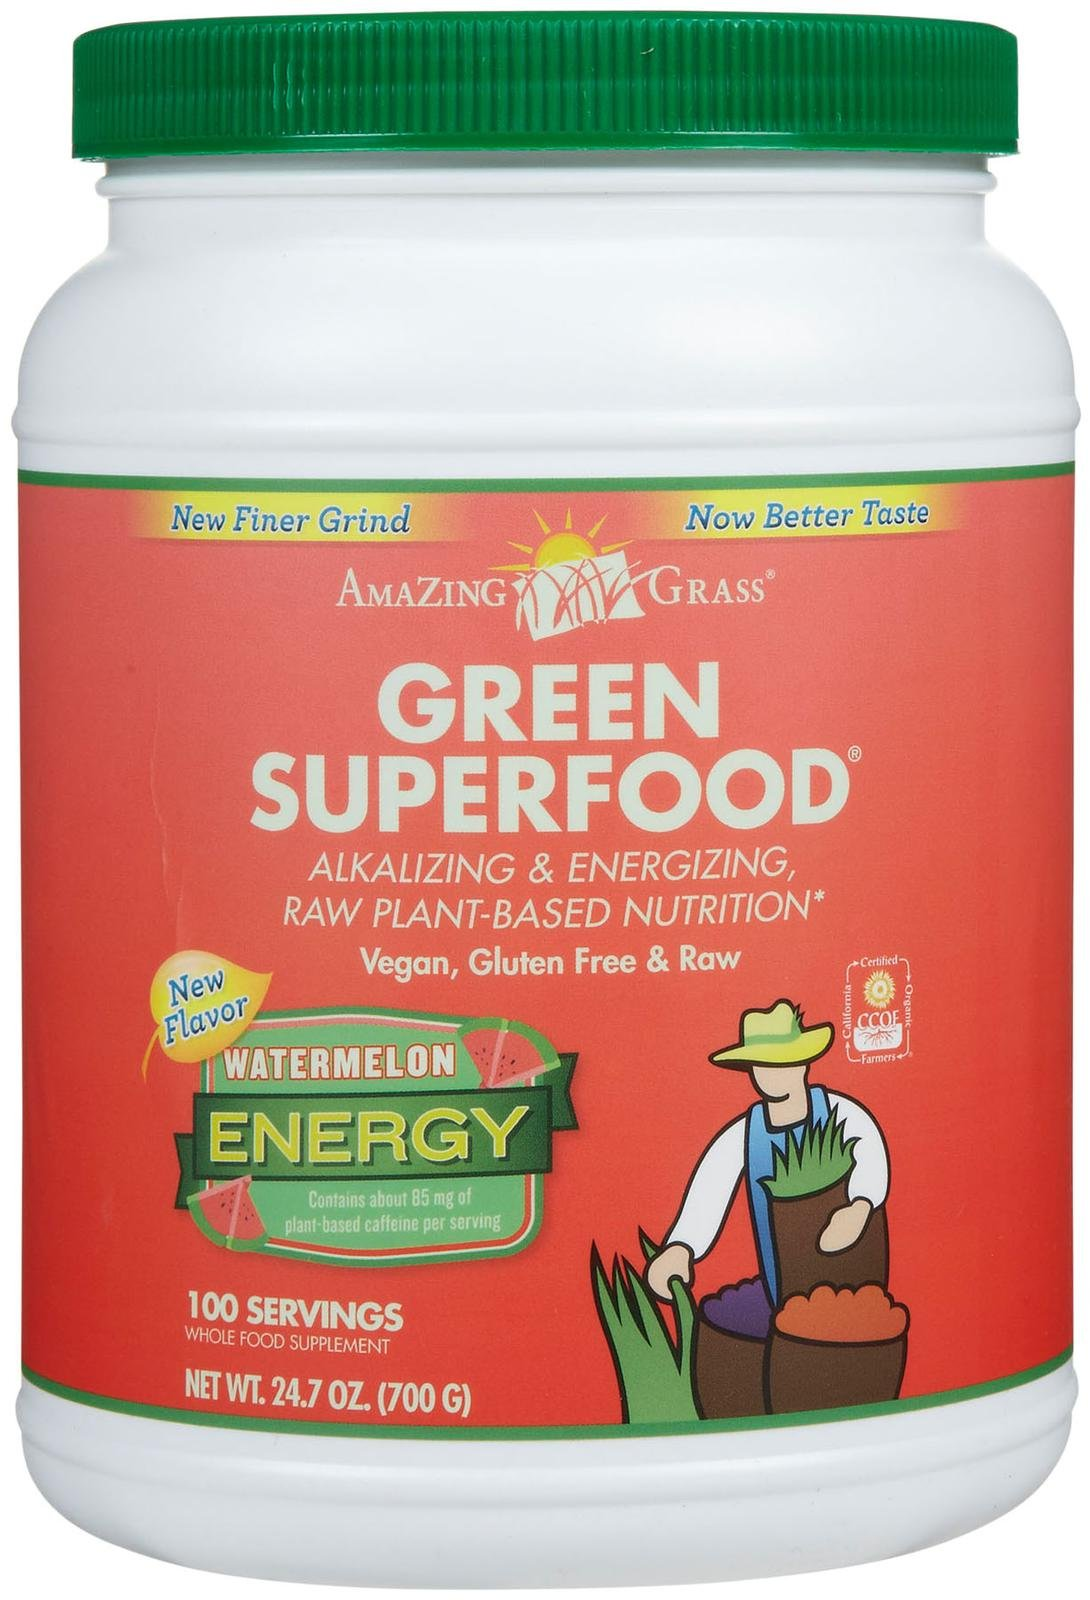 Amazing Grass Green Superfood Energy Drink Powder Watermelon - 24.7 oz